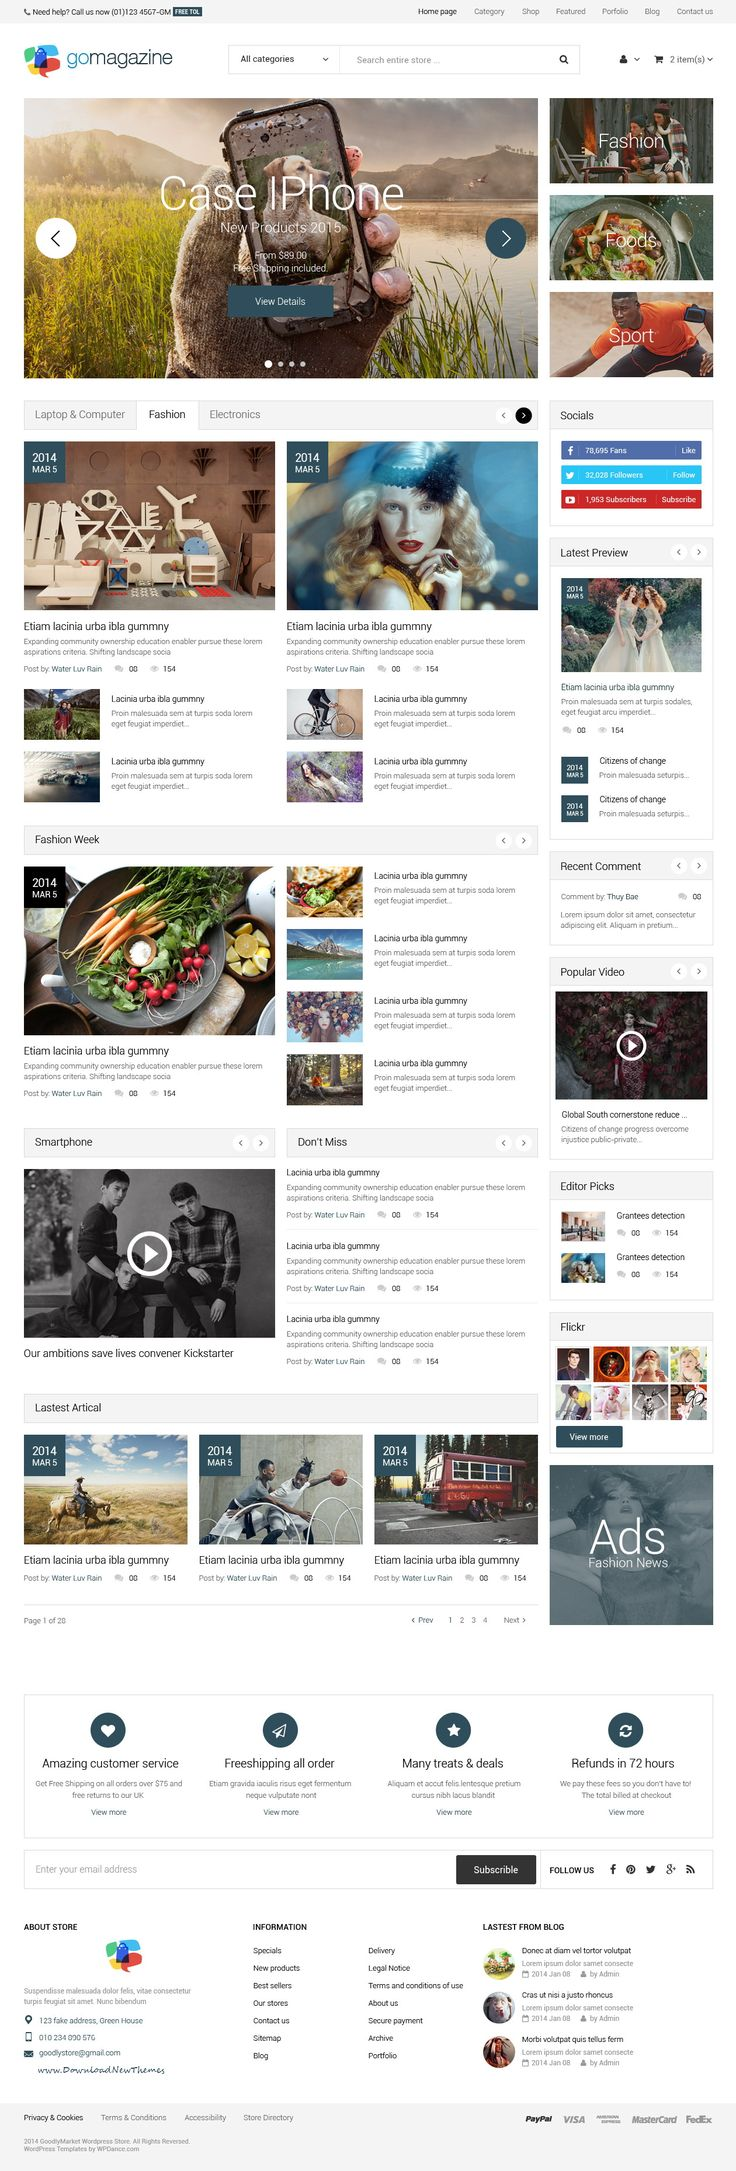 WooMarket Amazing Supermarket WordPress WooCommerce Theme // Hi Friends, look what I just found on #web #design! Make sure to follow us @moirestudiosjkt to see more pins like this | Moire Studios is a thriving website and graphic design studio based in Jakarta, Indonesia.